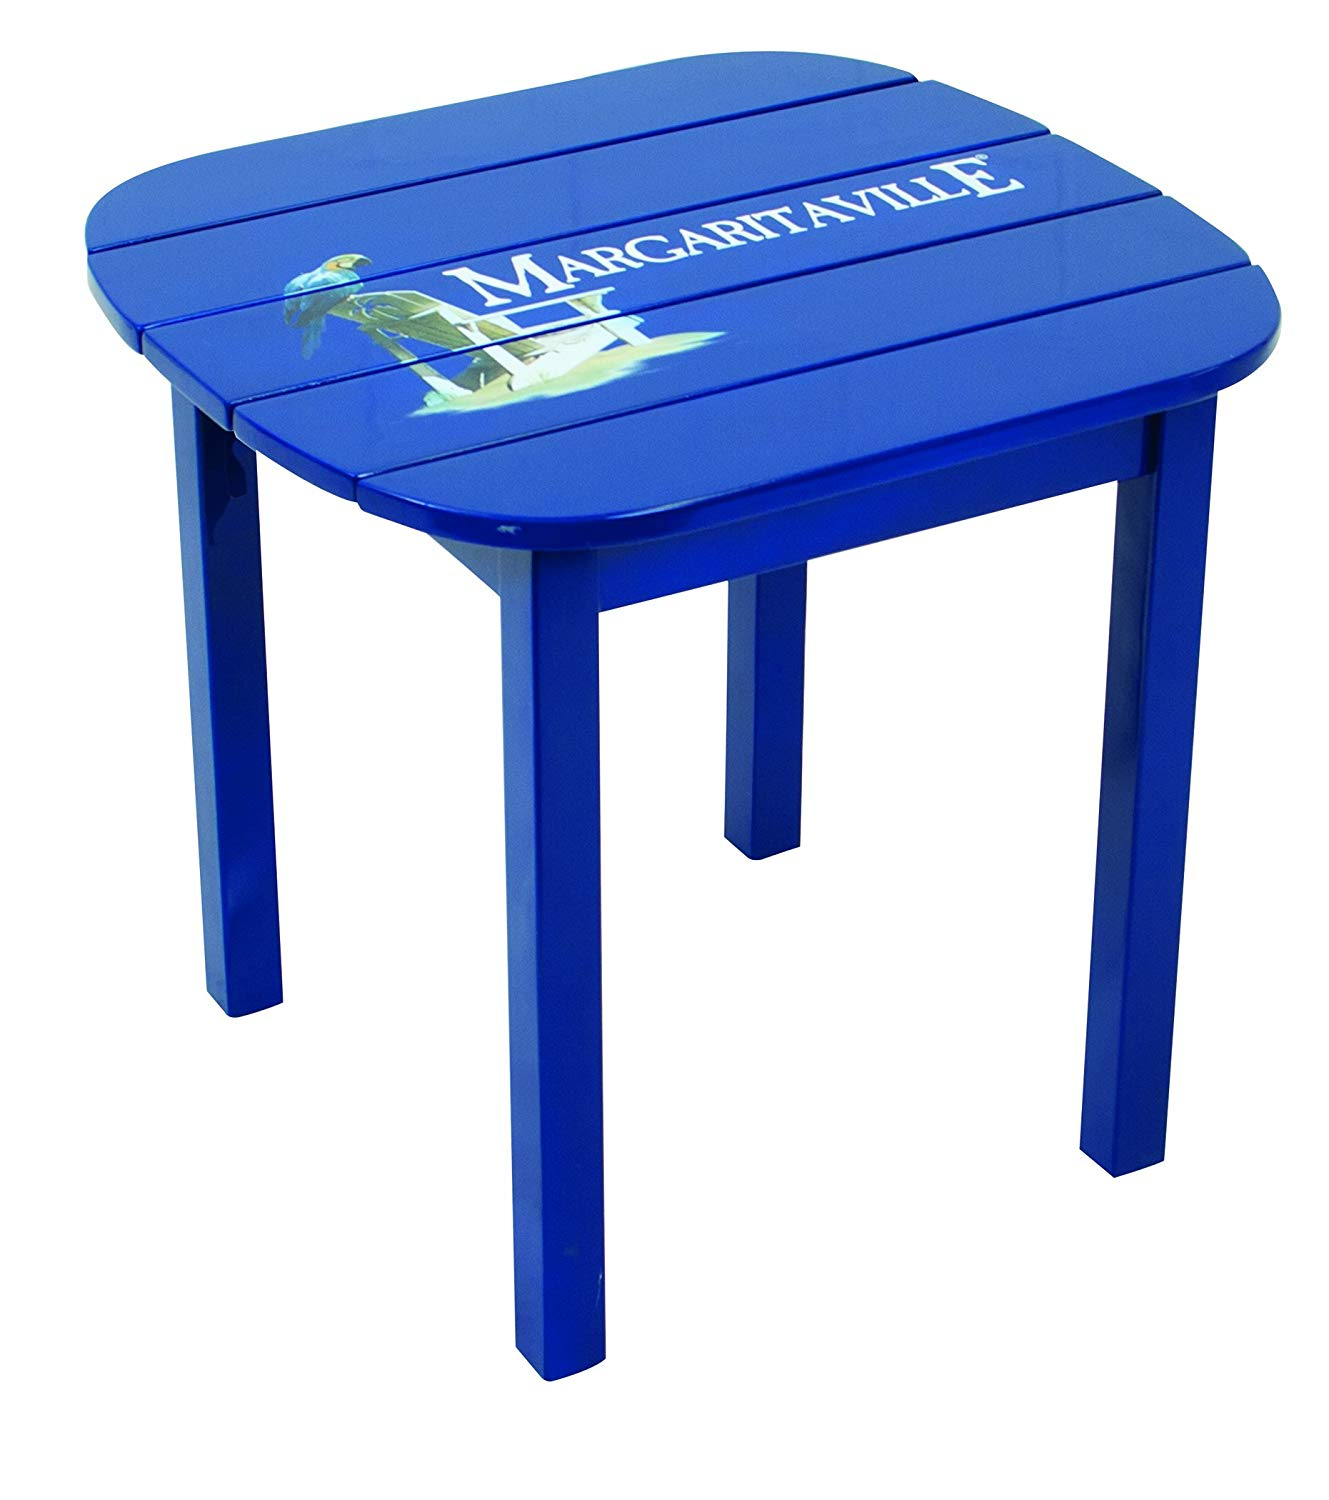 margaritaville outdoor side table castaway bay stamp blue logo garden piece dining set foyer and mirror green patio room sets for small spaces end clearance indoor bistro nate